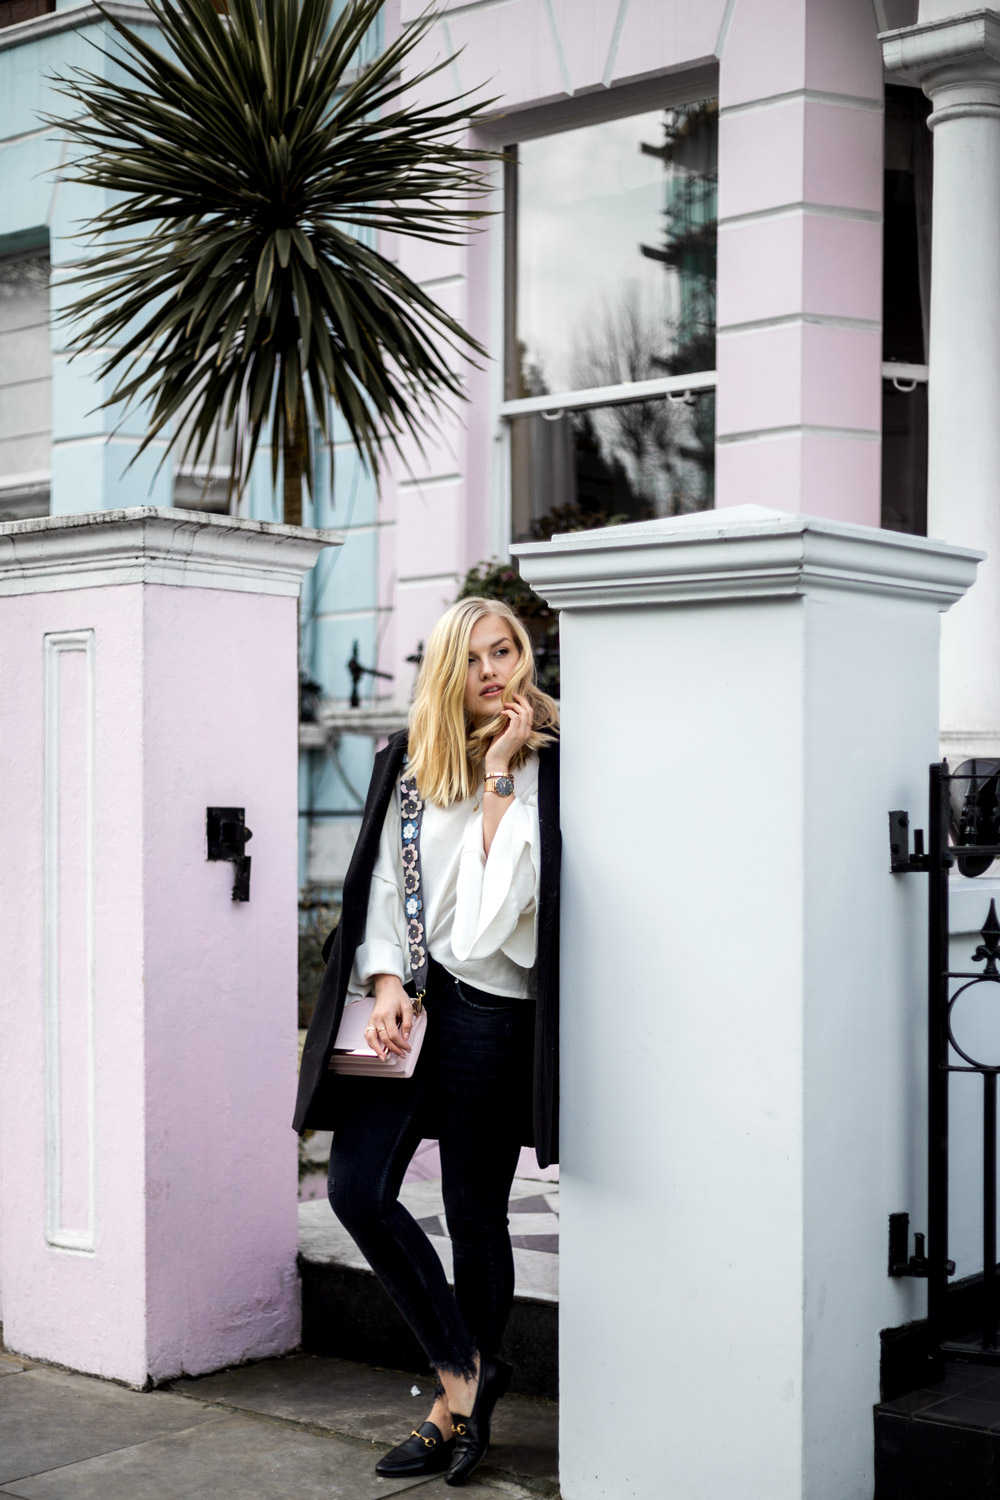 Eva-Jasmin-Notting-Hill-London-Outfit-Gucci-Zara-LFW-02